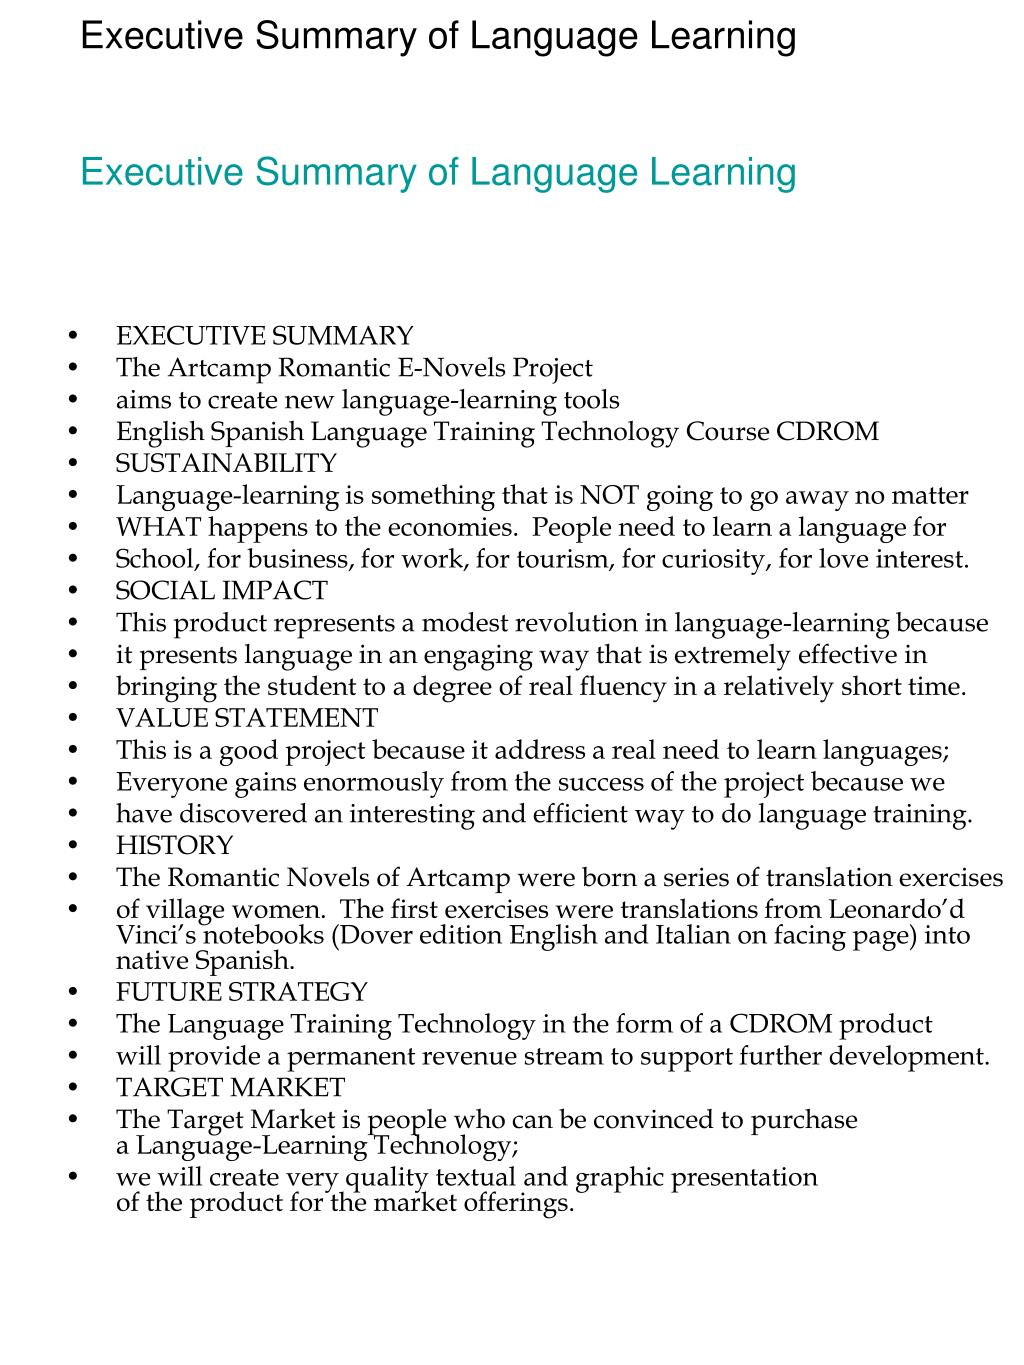 Executive Summary of Language Learning